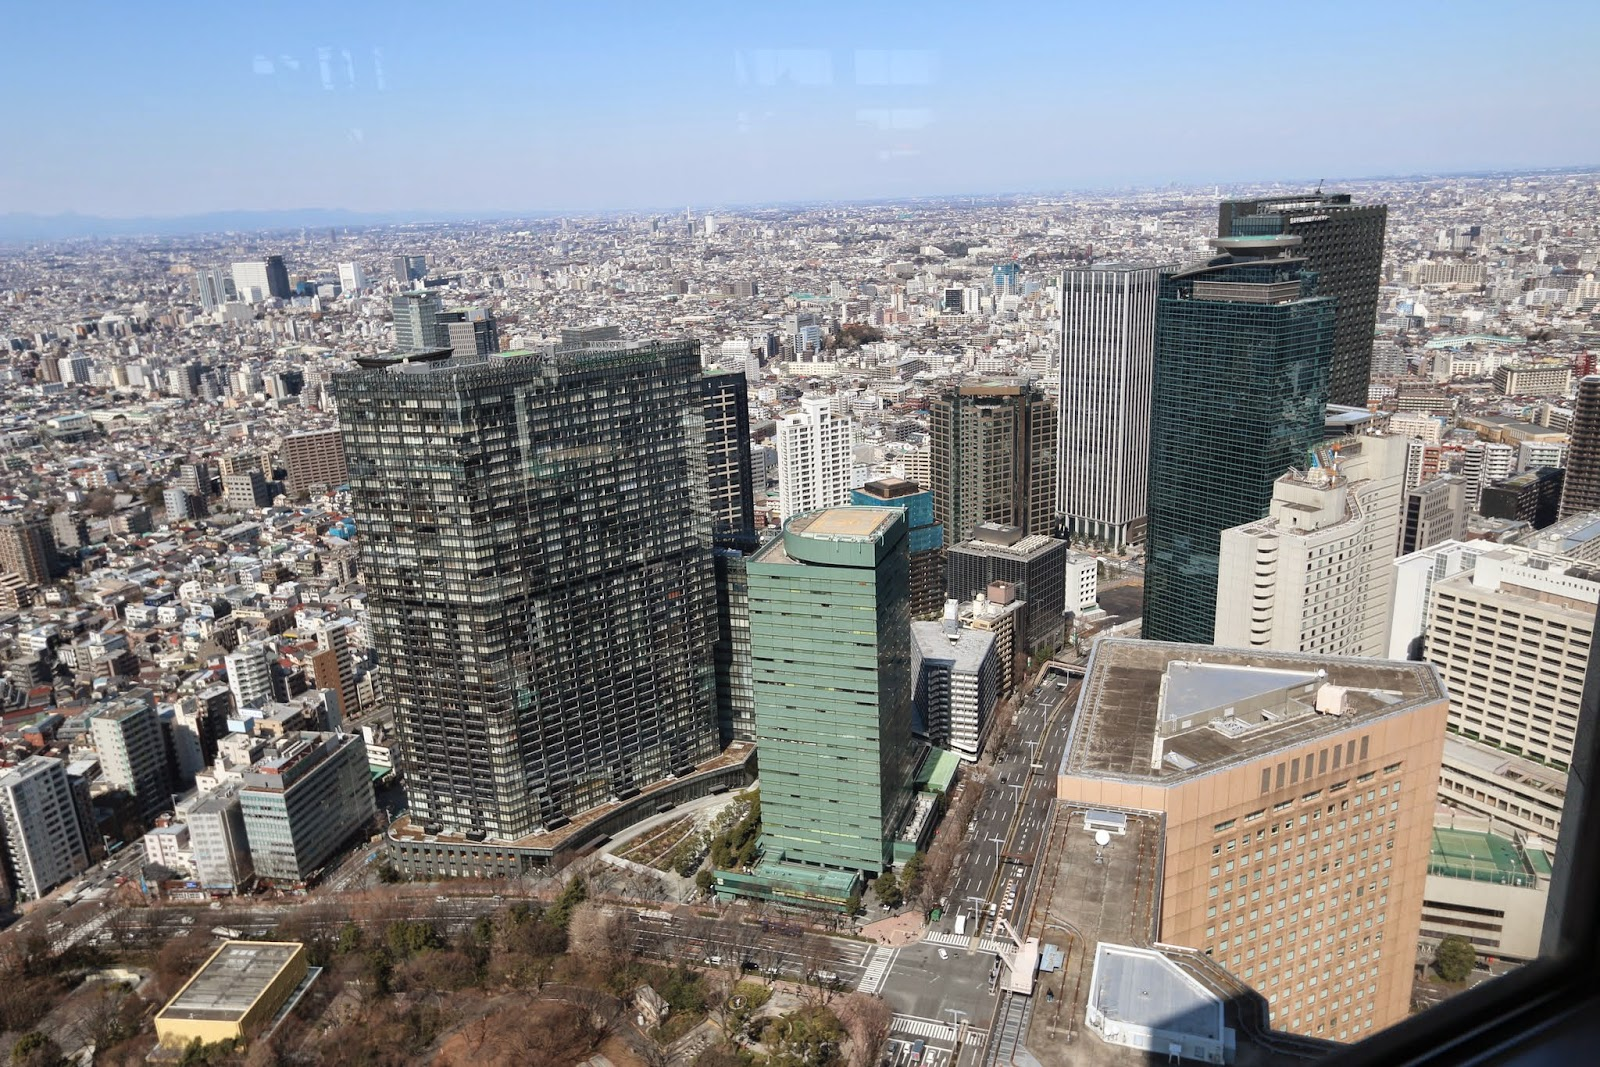 Another closer compact and high density of Tokyo city from the observation deck at Tokyo Metropolitan Government Building in Shinjuku